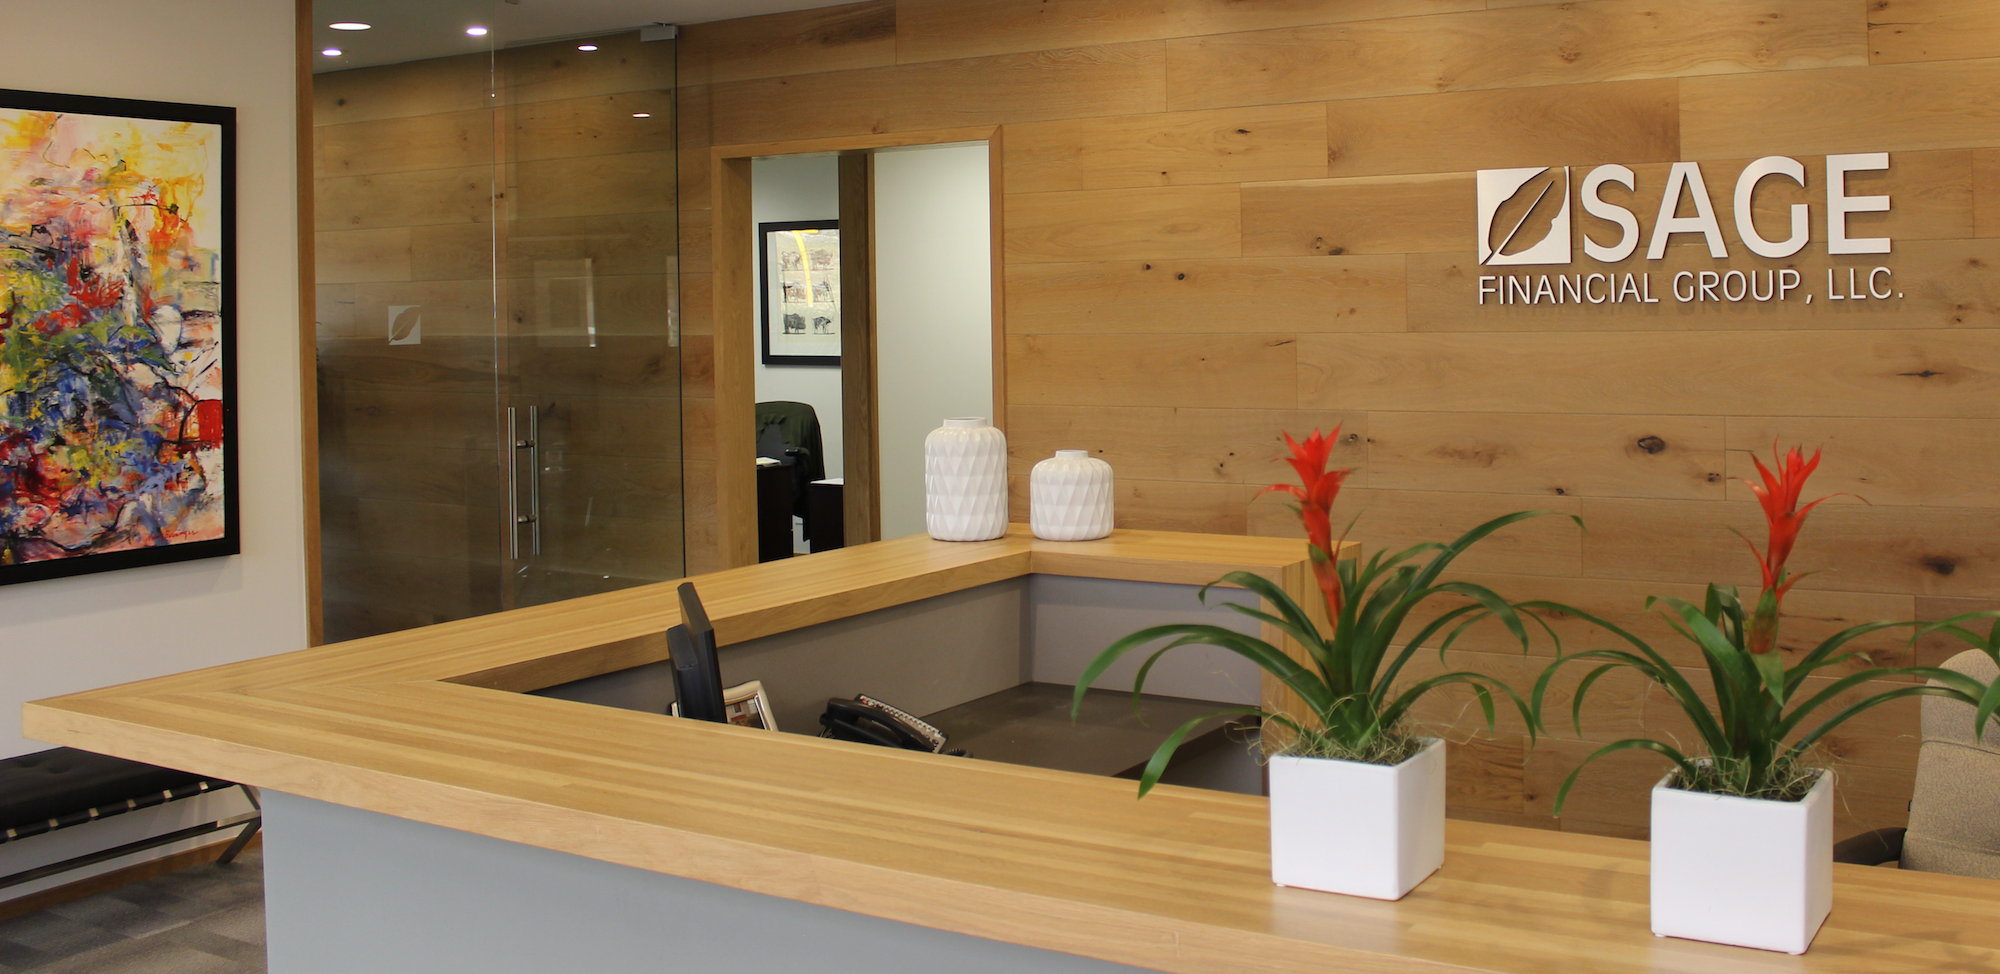 Sage Financial Group Interior